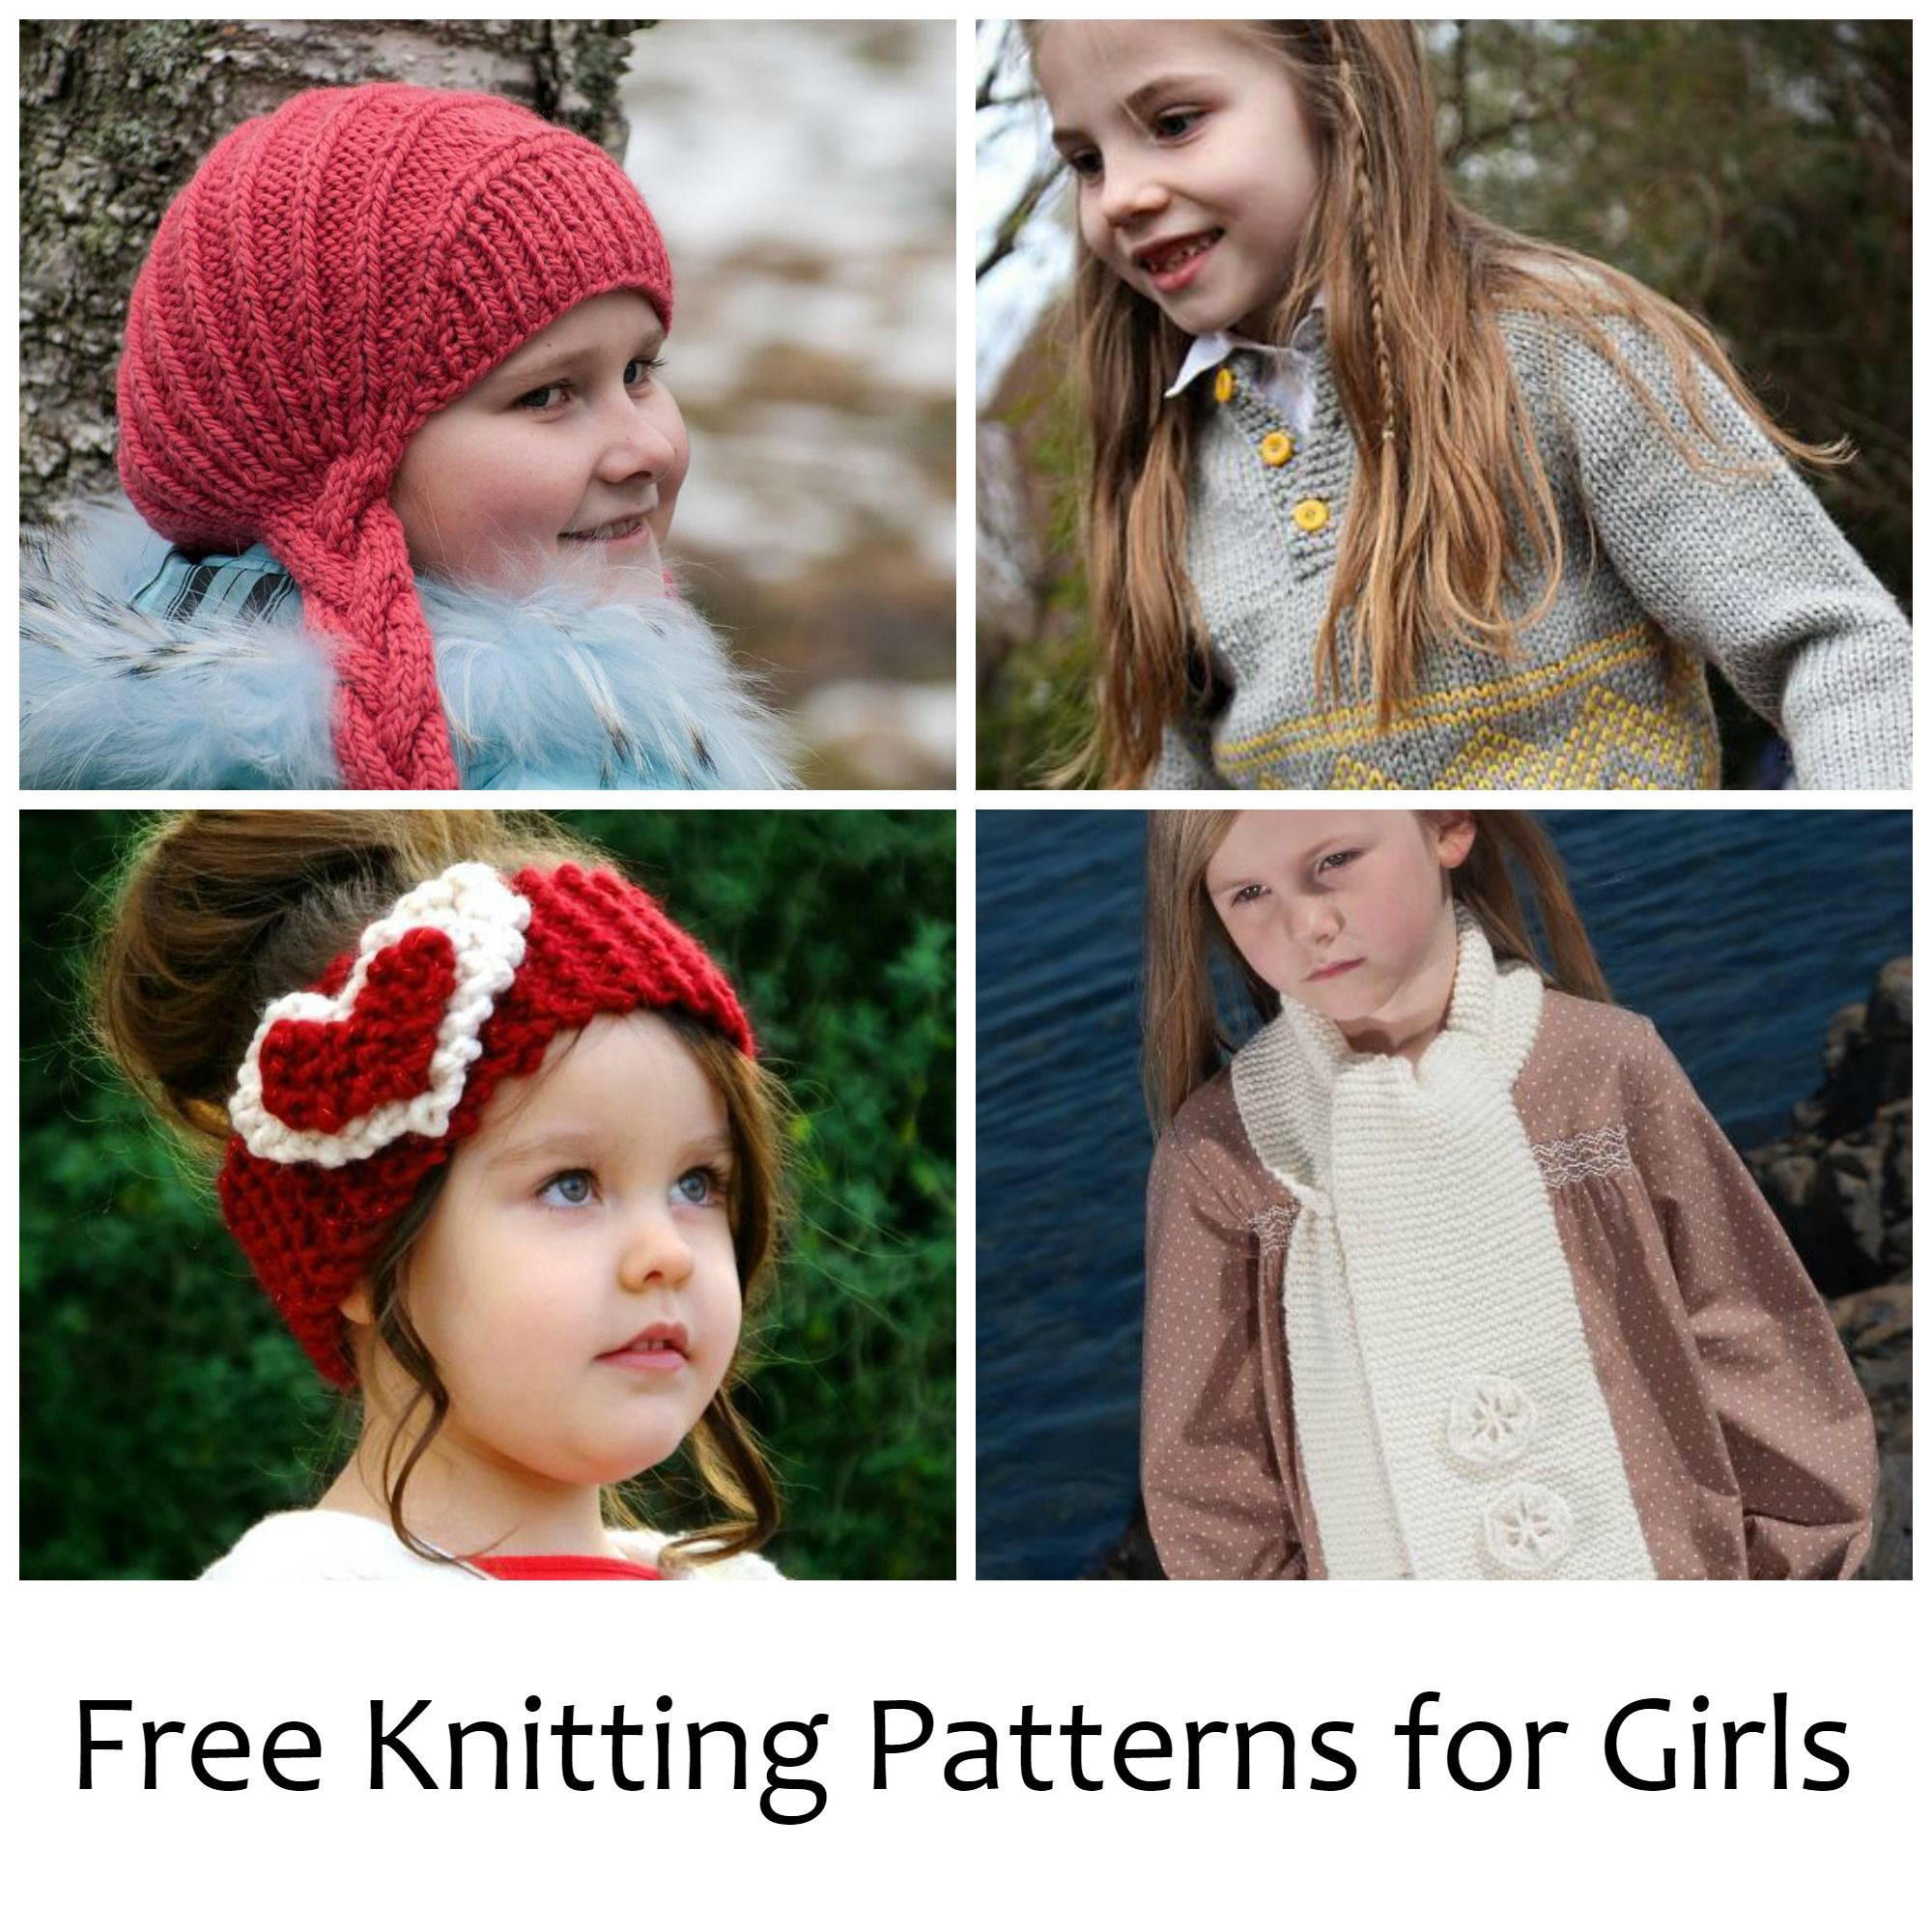 2a895855a8bf 10 Free Knitting Patterns for Girls on Craftsy